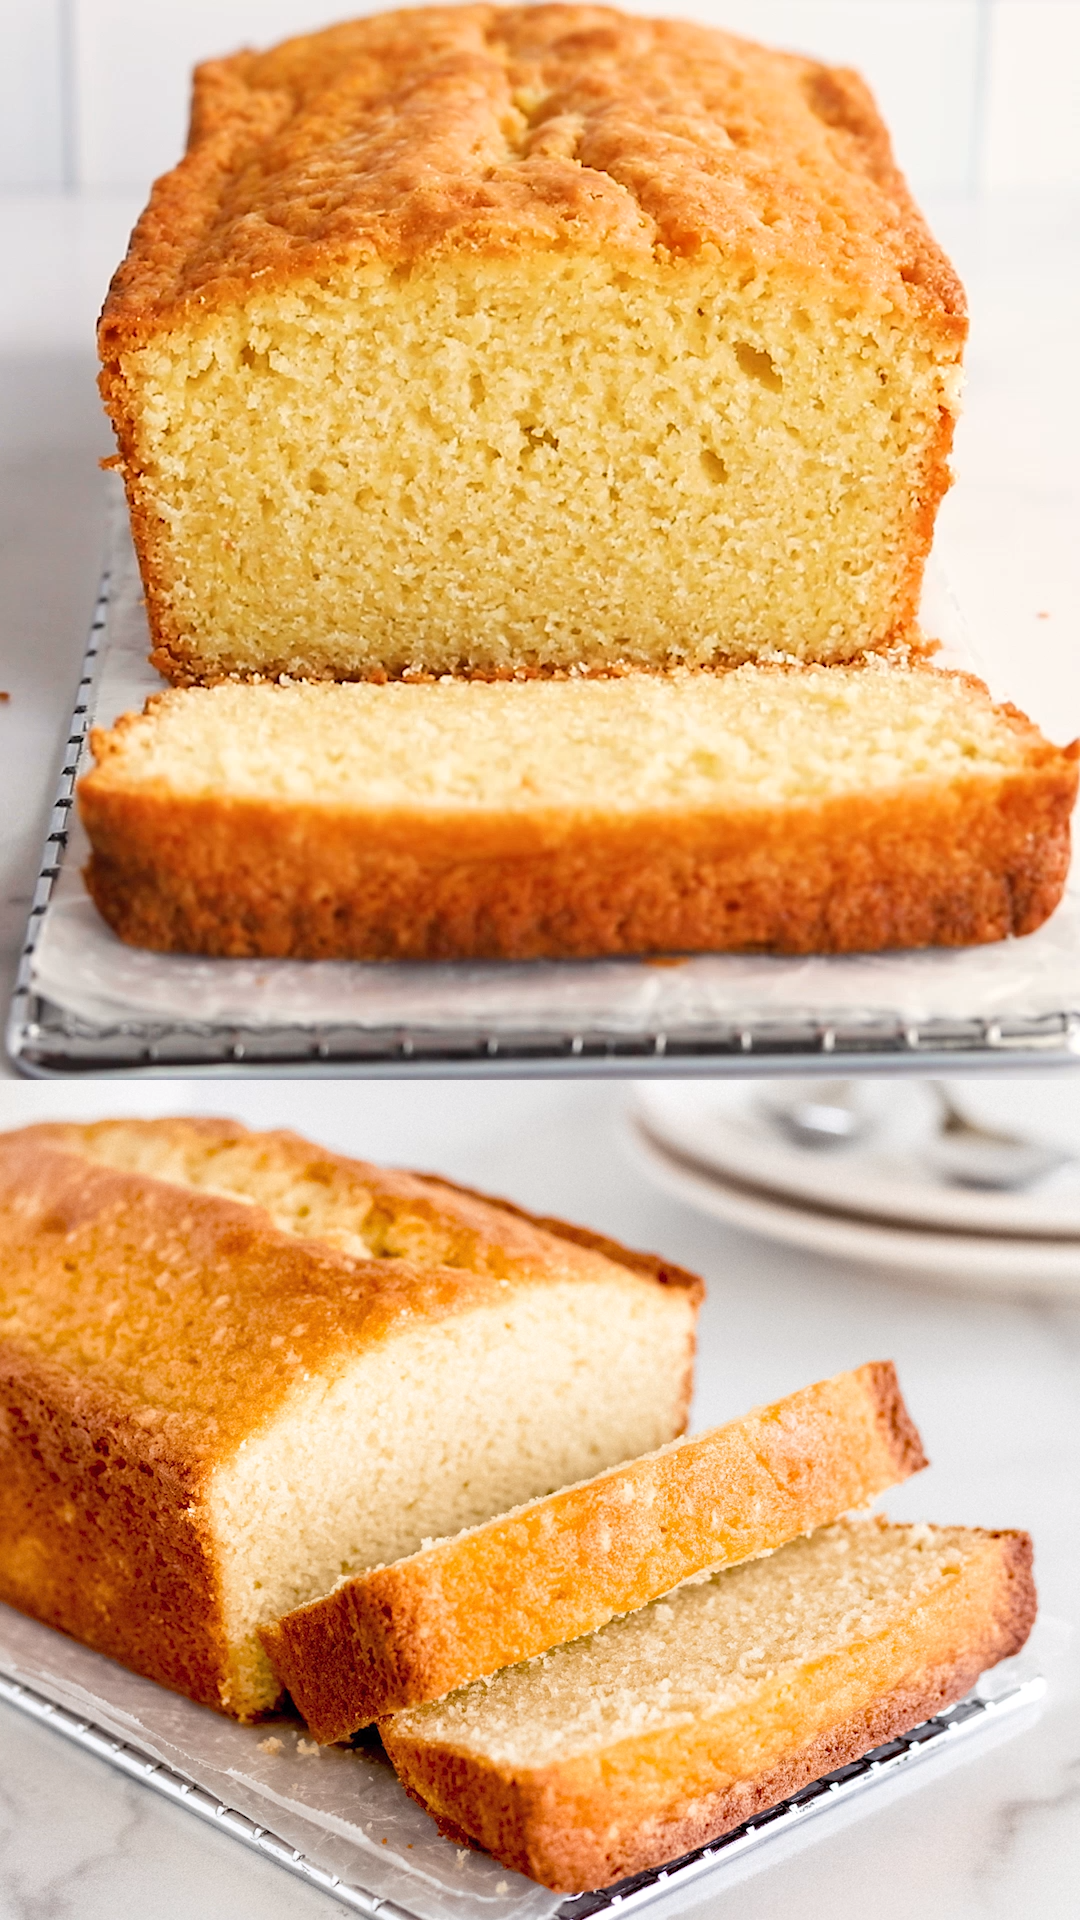 Cream cheese pound cake is made in a loaf pan with cream cheese, butter, eggs, sugar and flour. The cake's moist, dense texture makes for a delicious dessert.